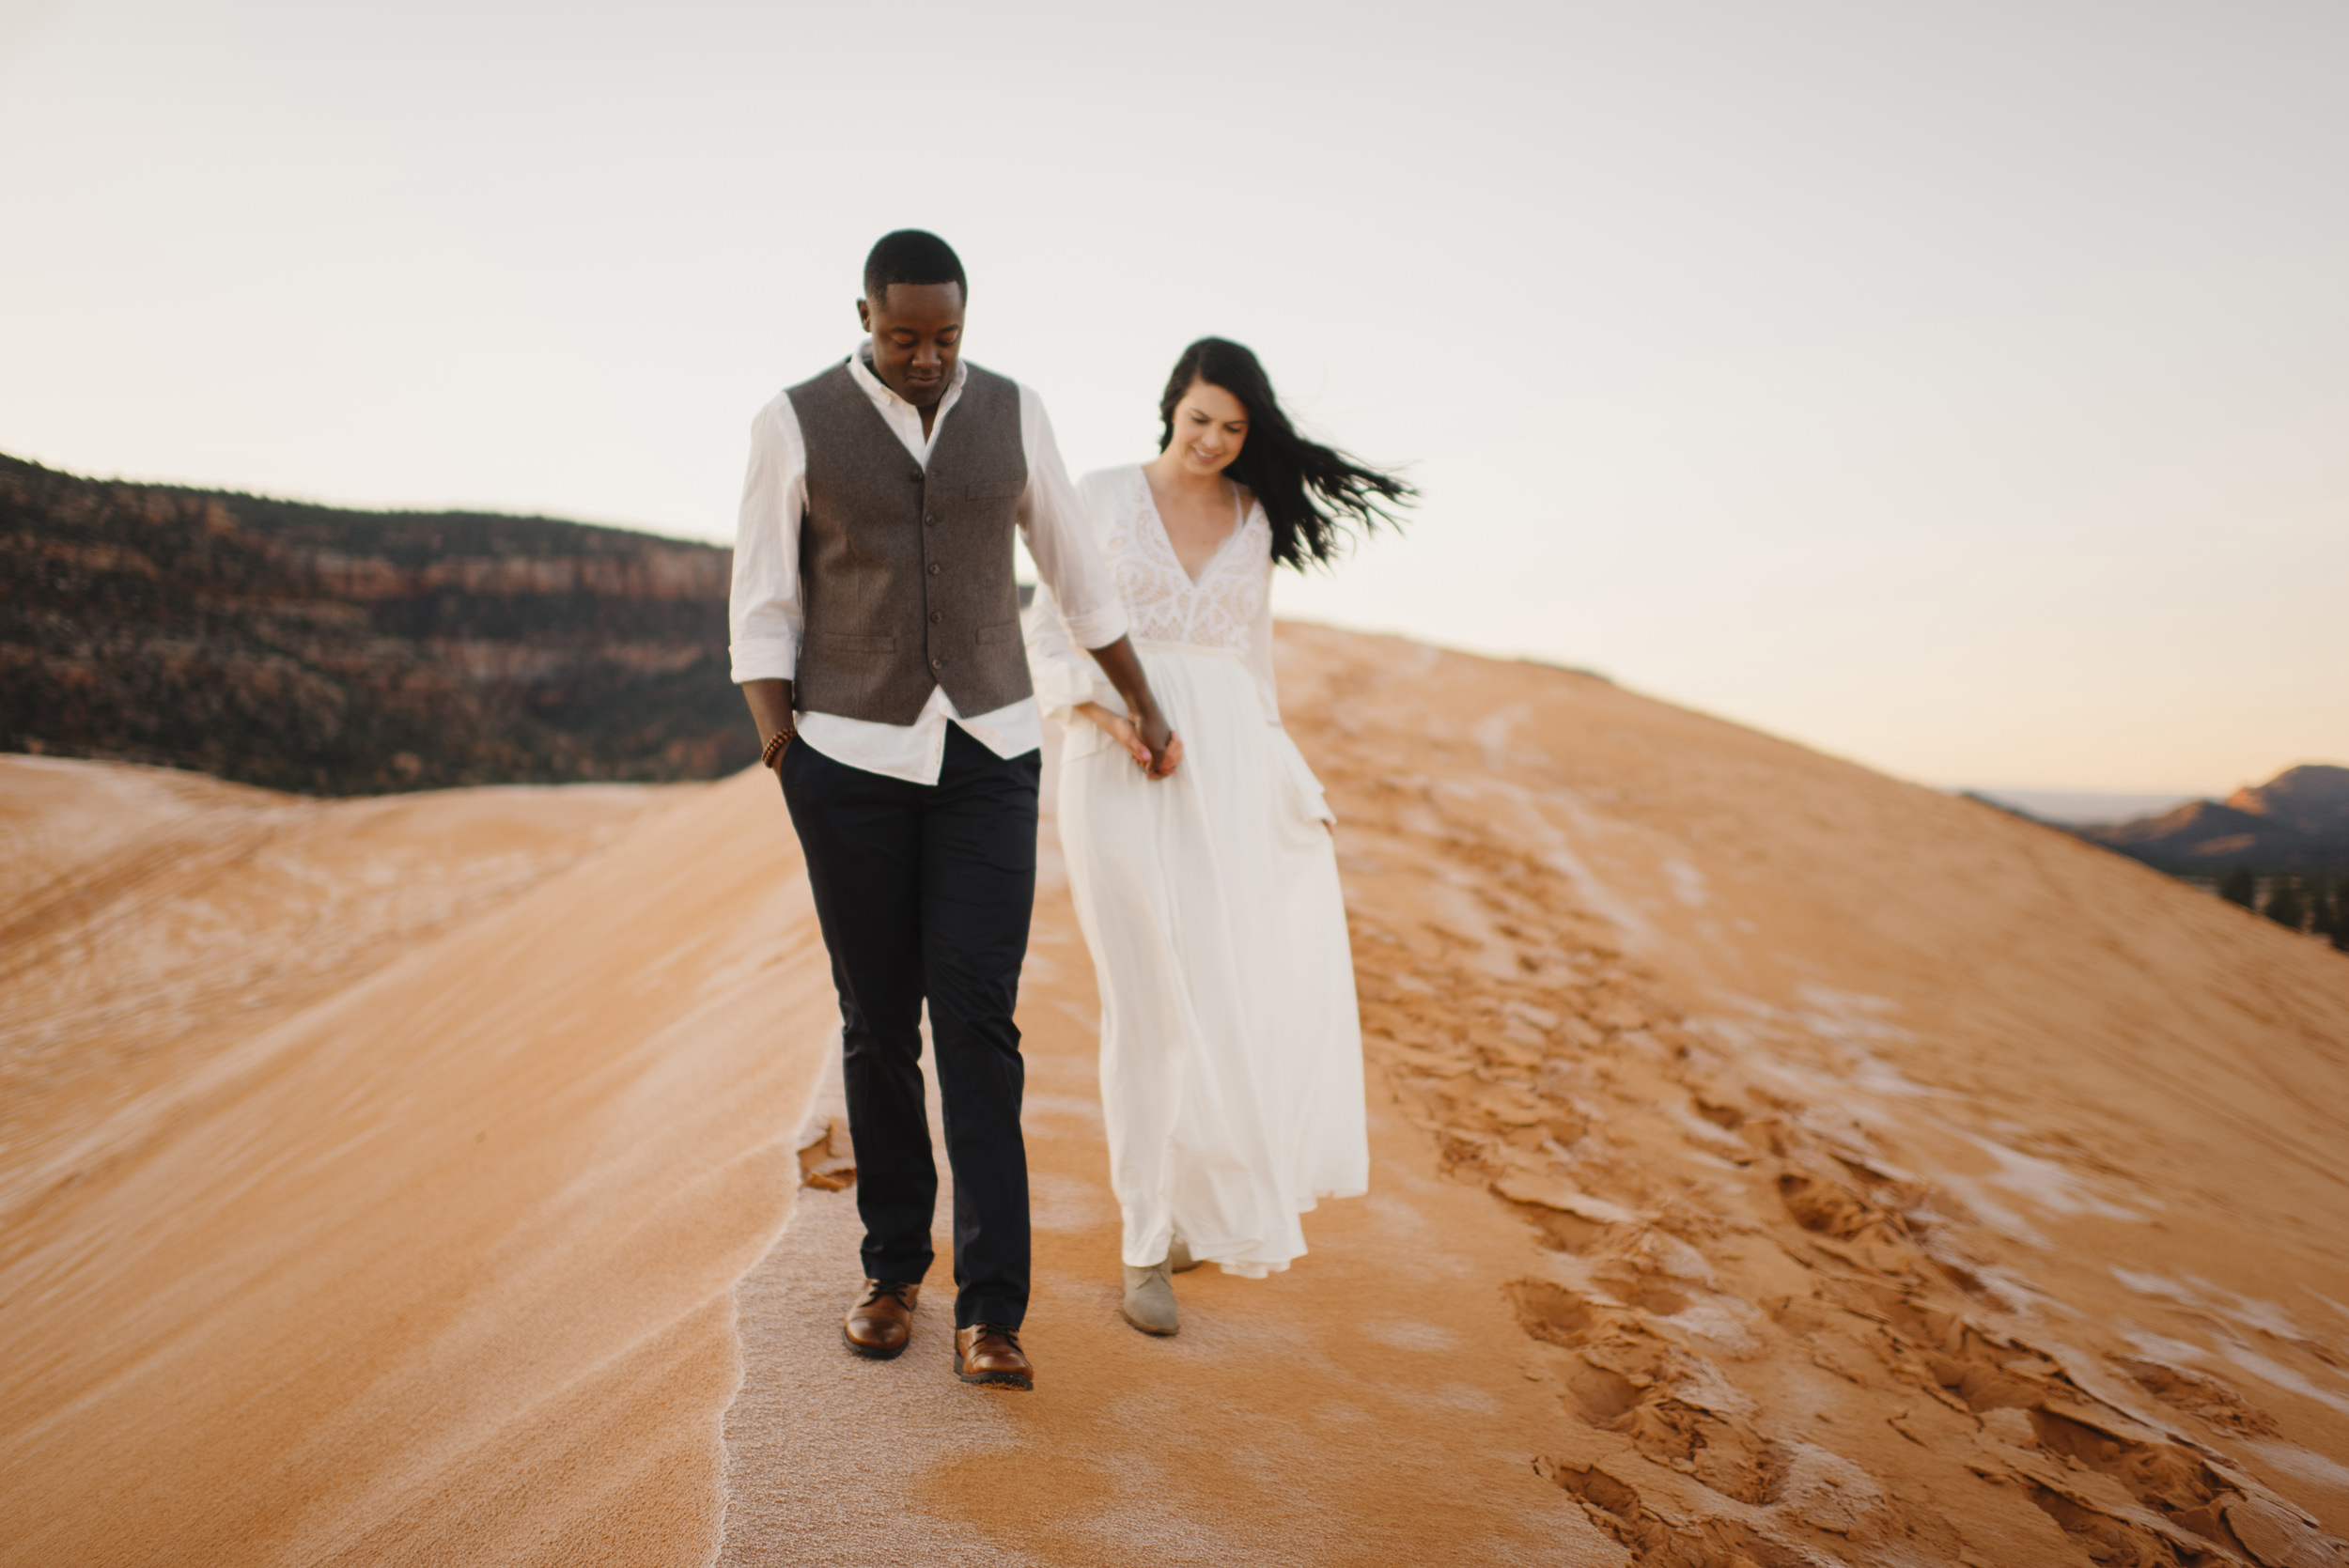 Holding hands a couple smiles during their Coral Pink Sand Dunes Engagement Photography Session by Utah Destination Elopement Photographer Colby and Jess